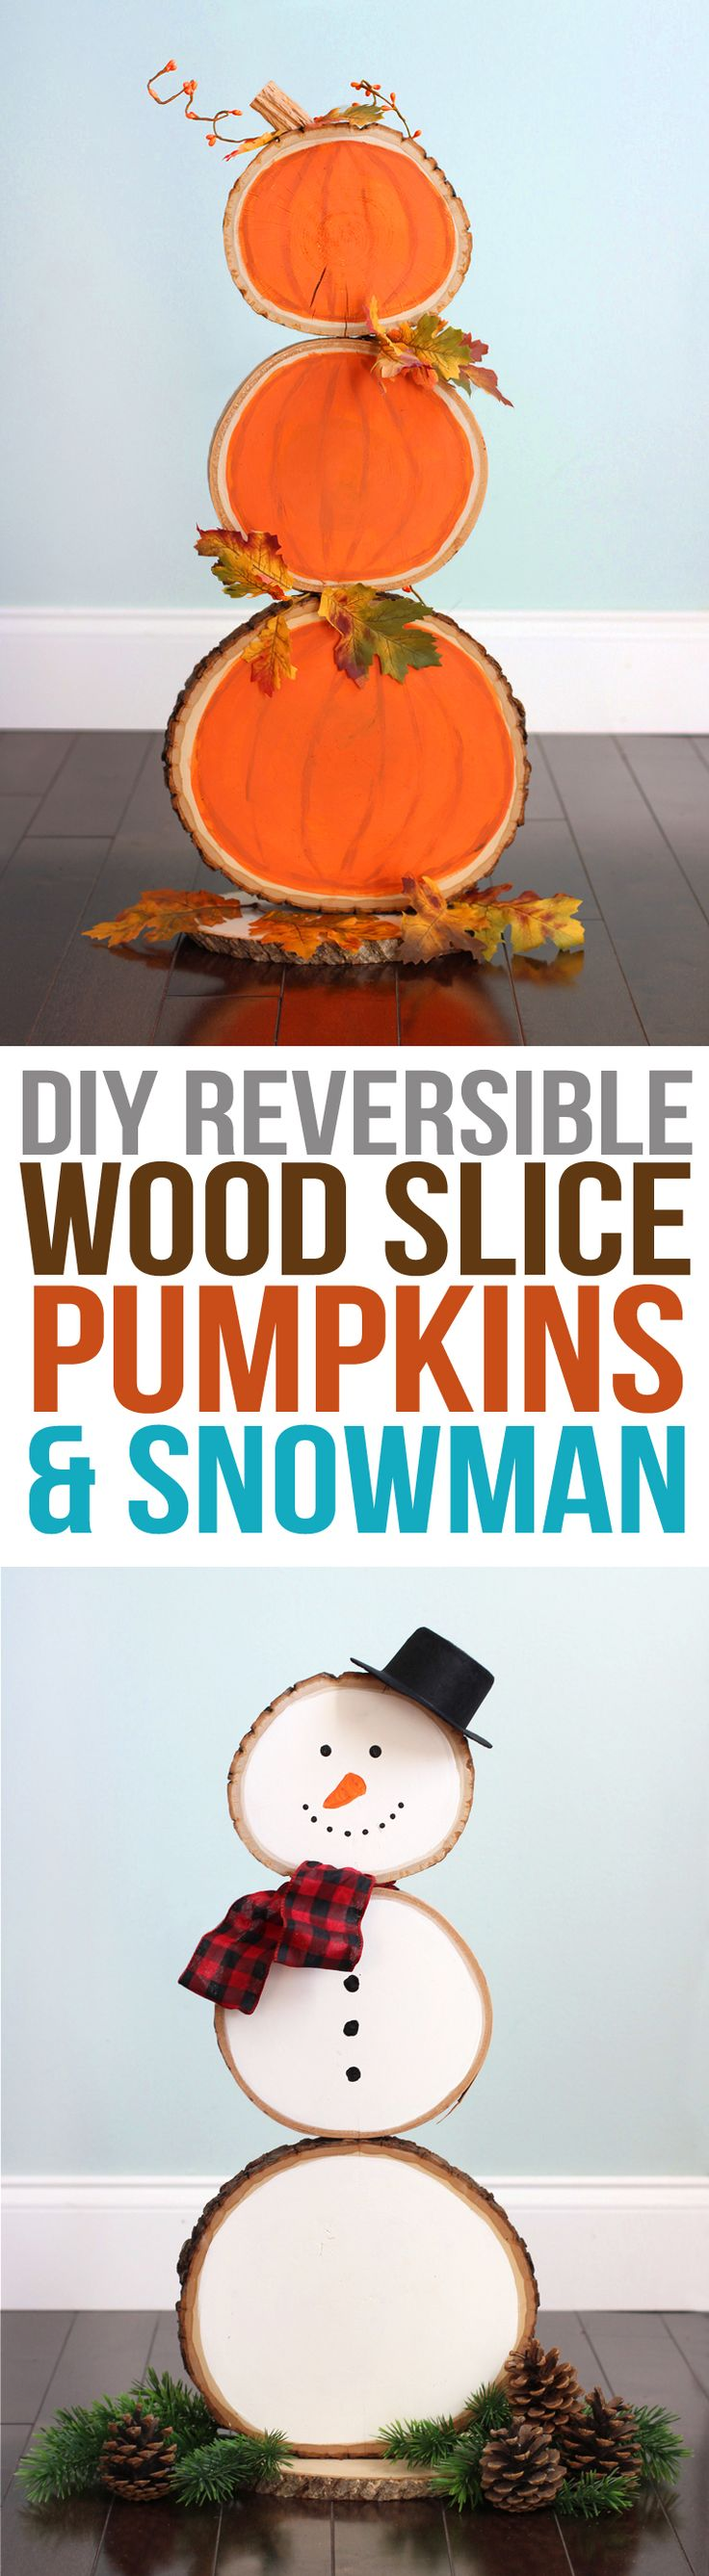 Best 25 wood cake ideas on pinterest tiered cakes for 3 tier pumpkin decoration